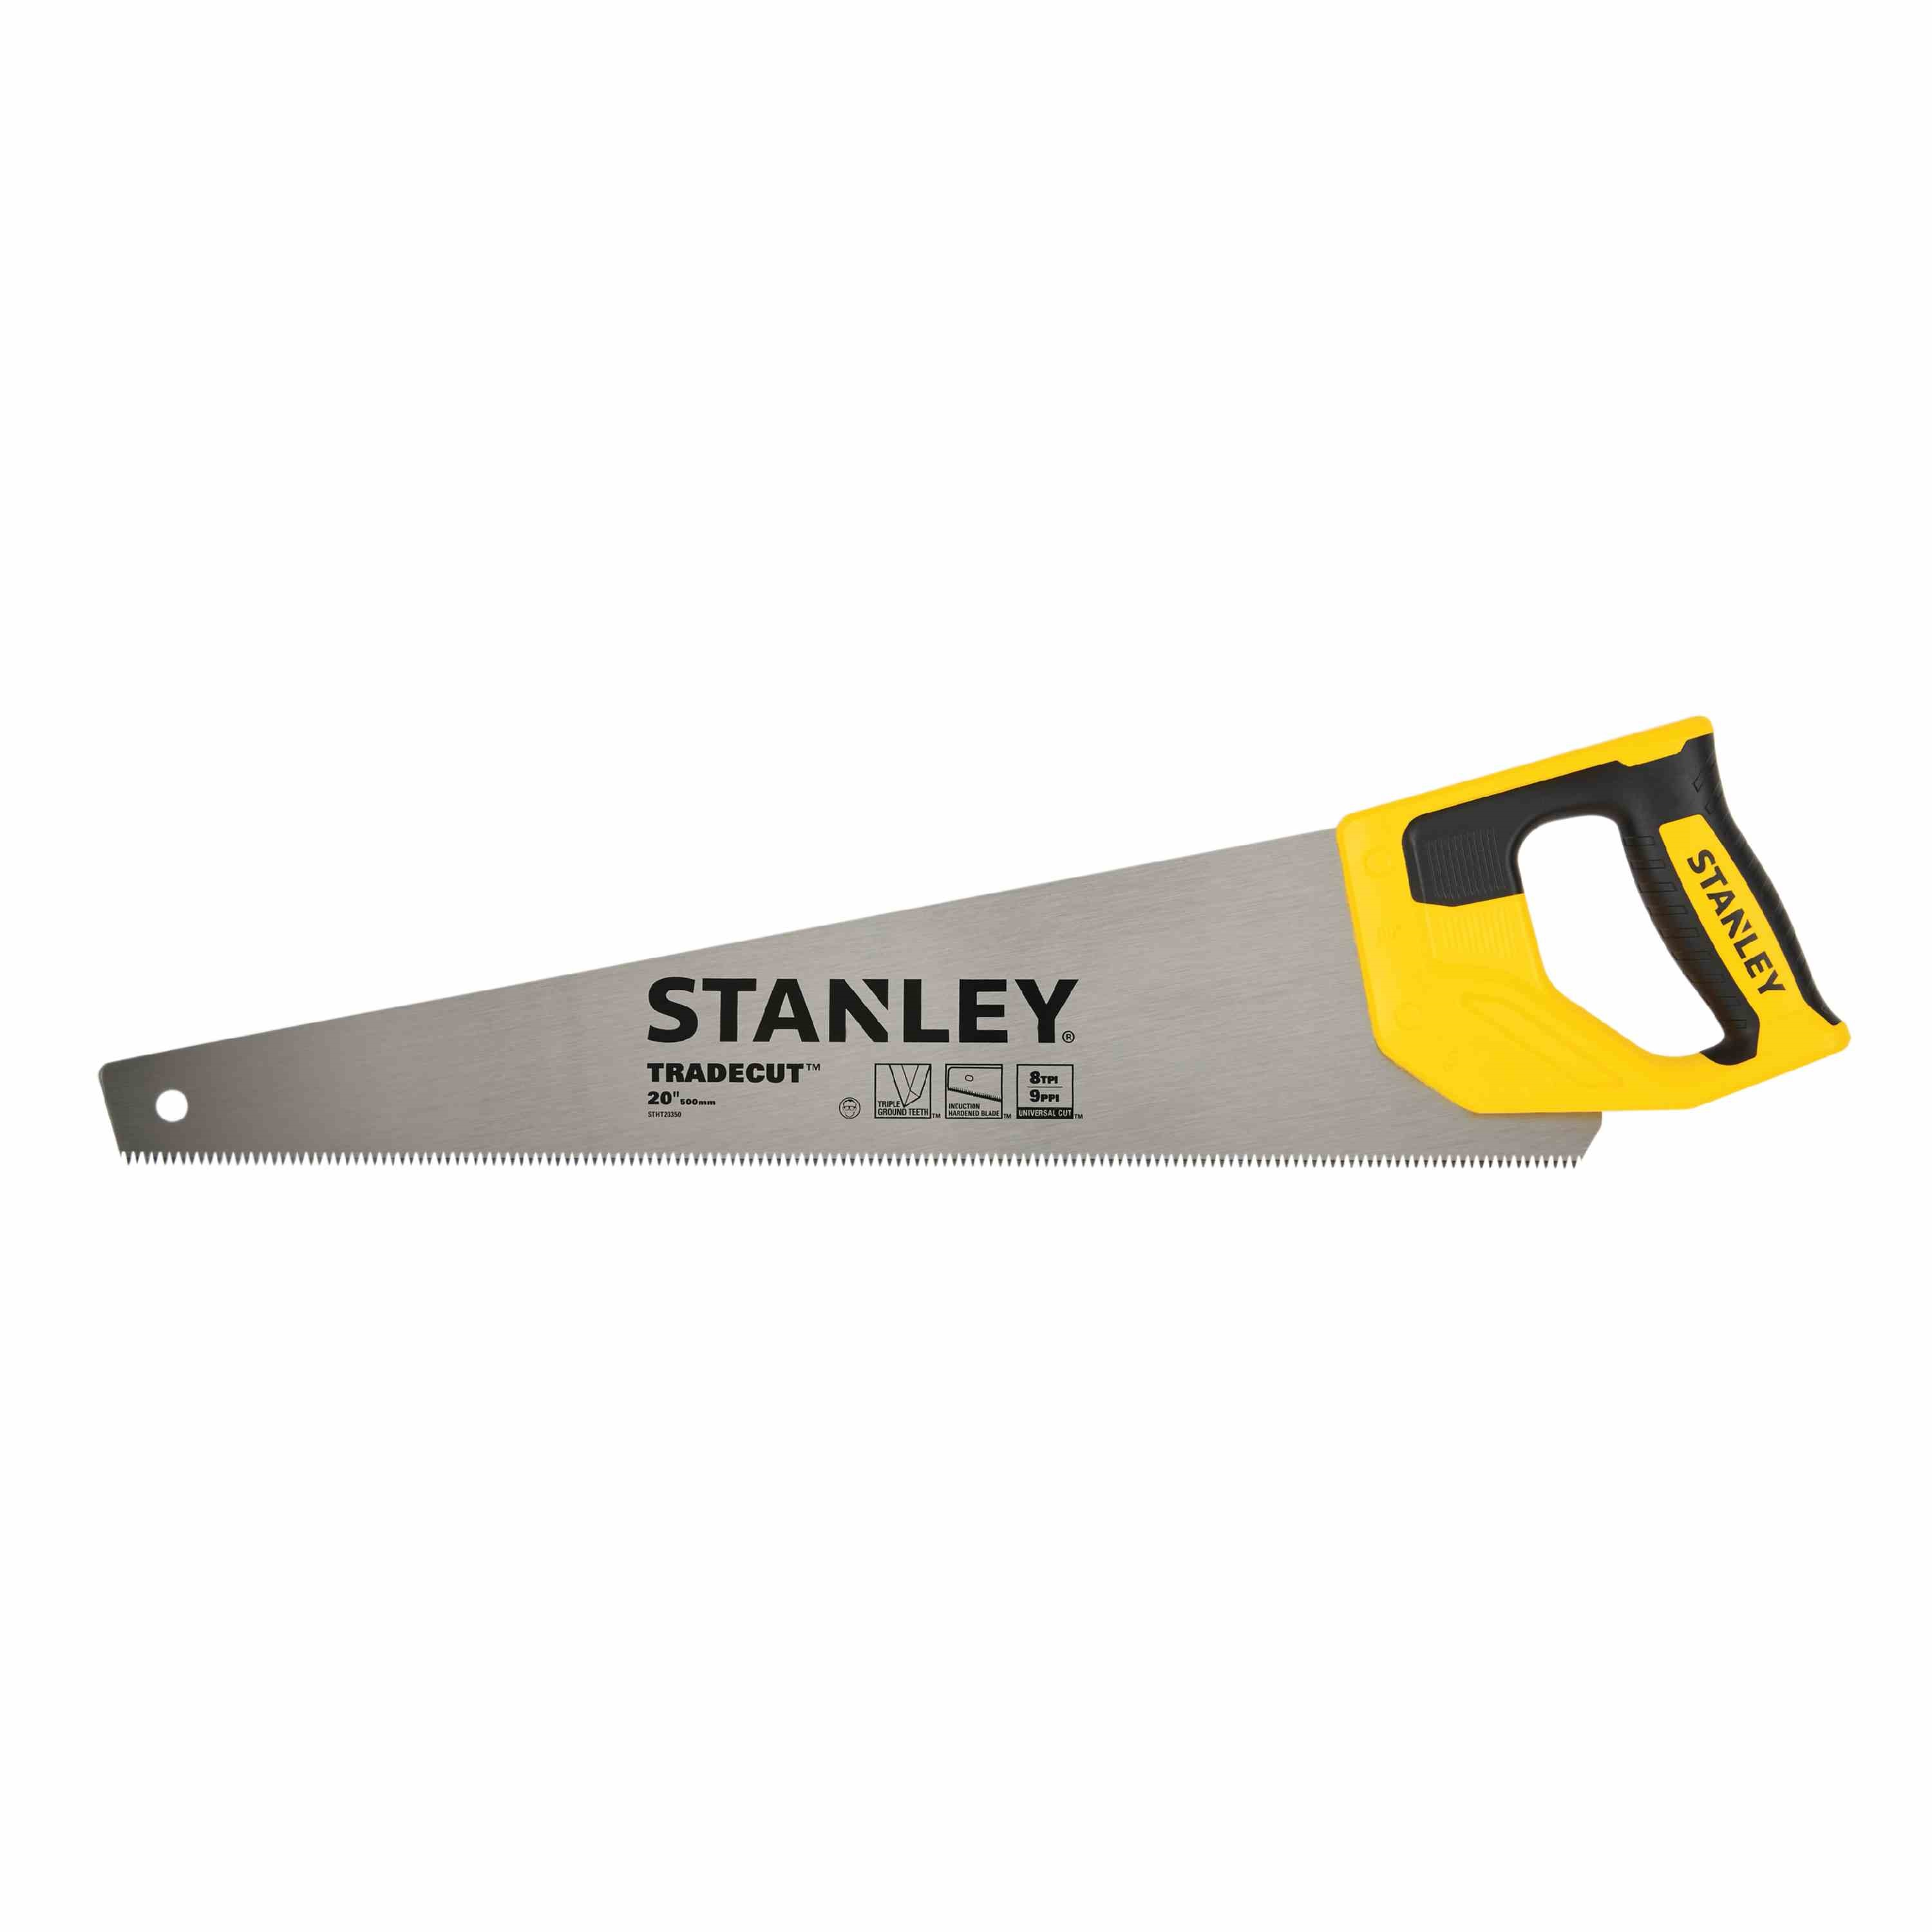 Stanley Tools - 20 IN TRADECUT PANEL SAW - STHT20350